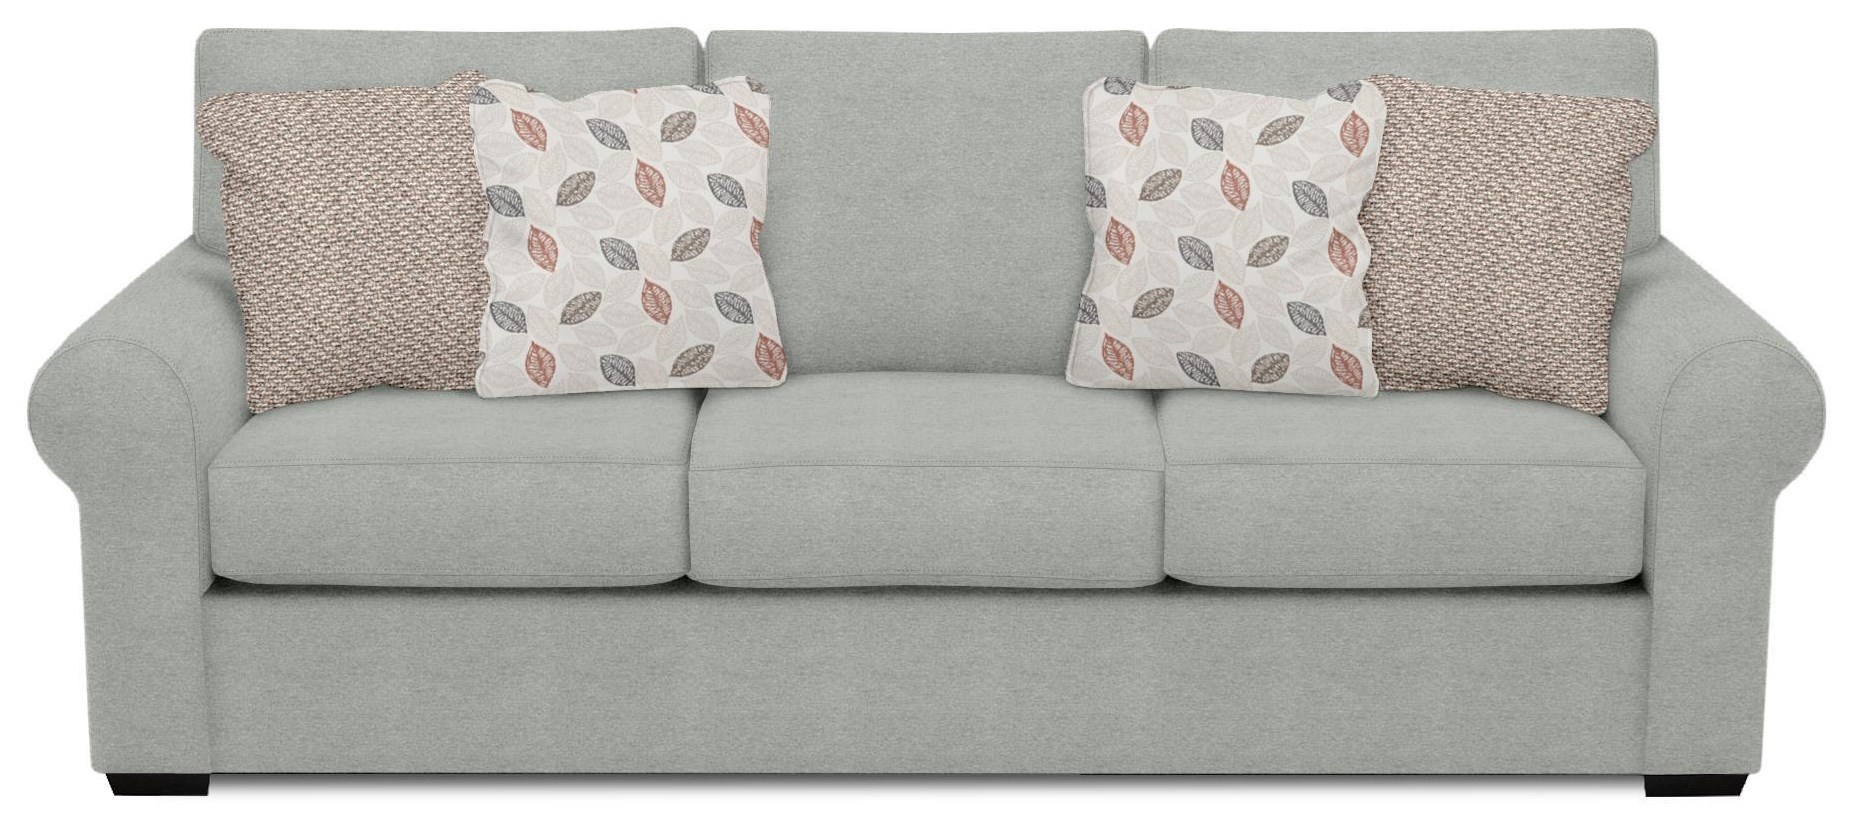 Telluride Sofa with Dropdown Tray by England at Crowley Furniture & Mattress